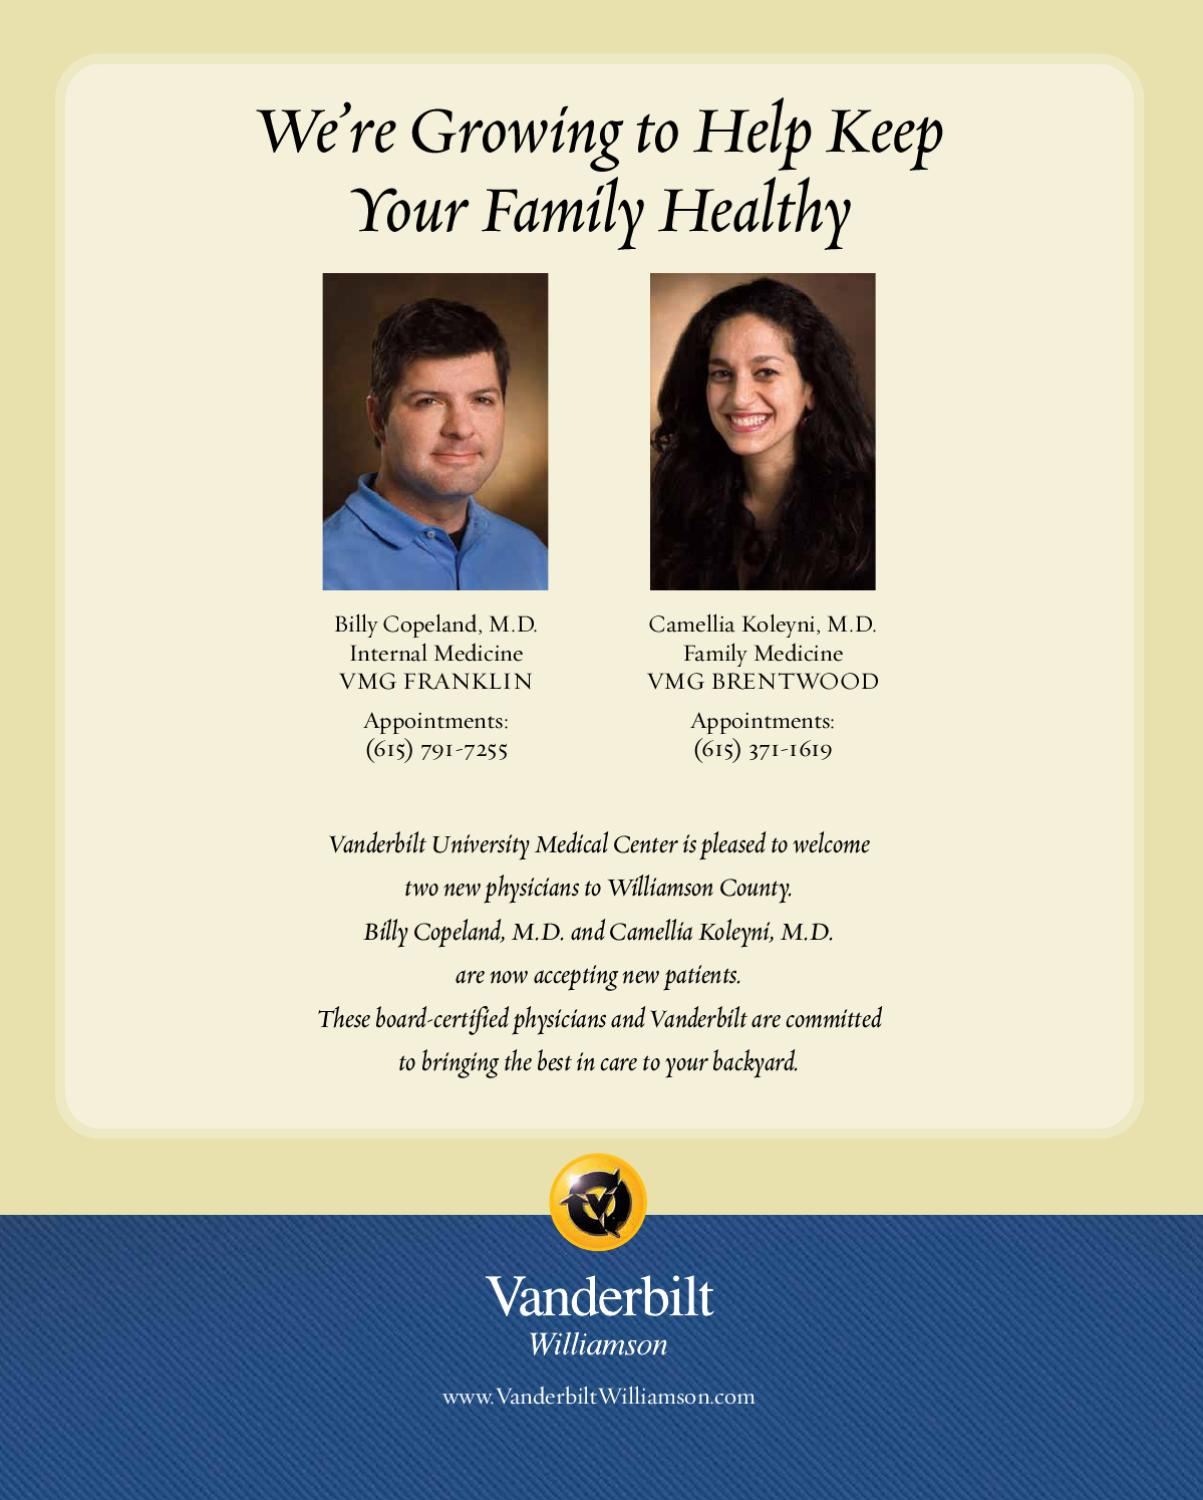 Vanderbilt University Medical Center Physicians